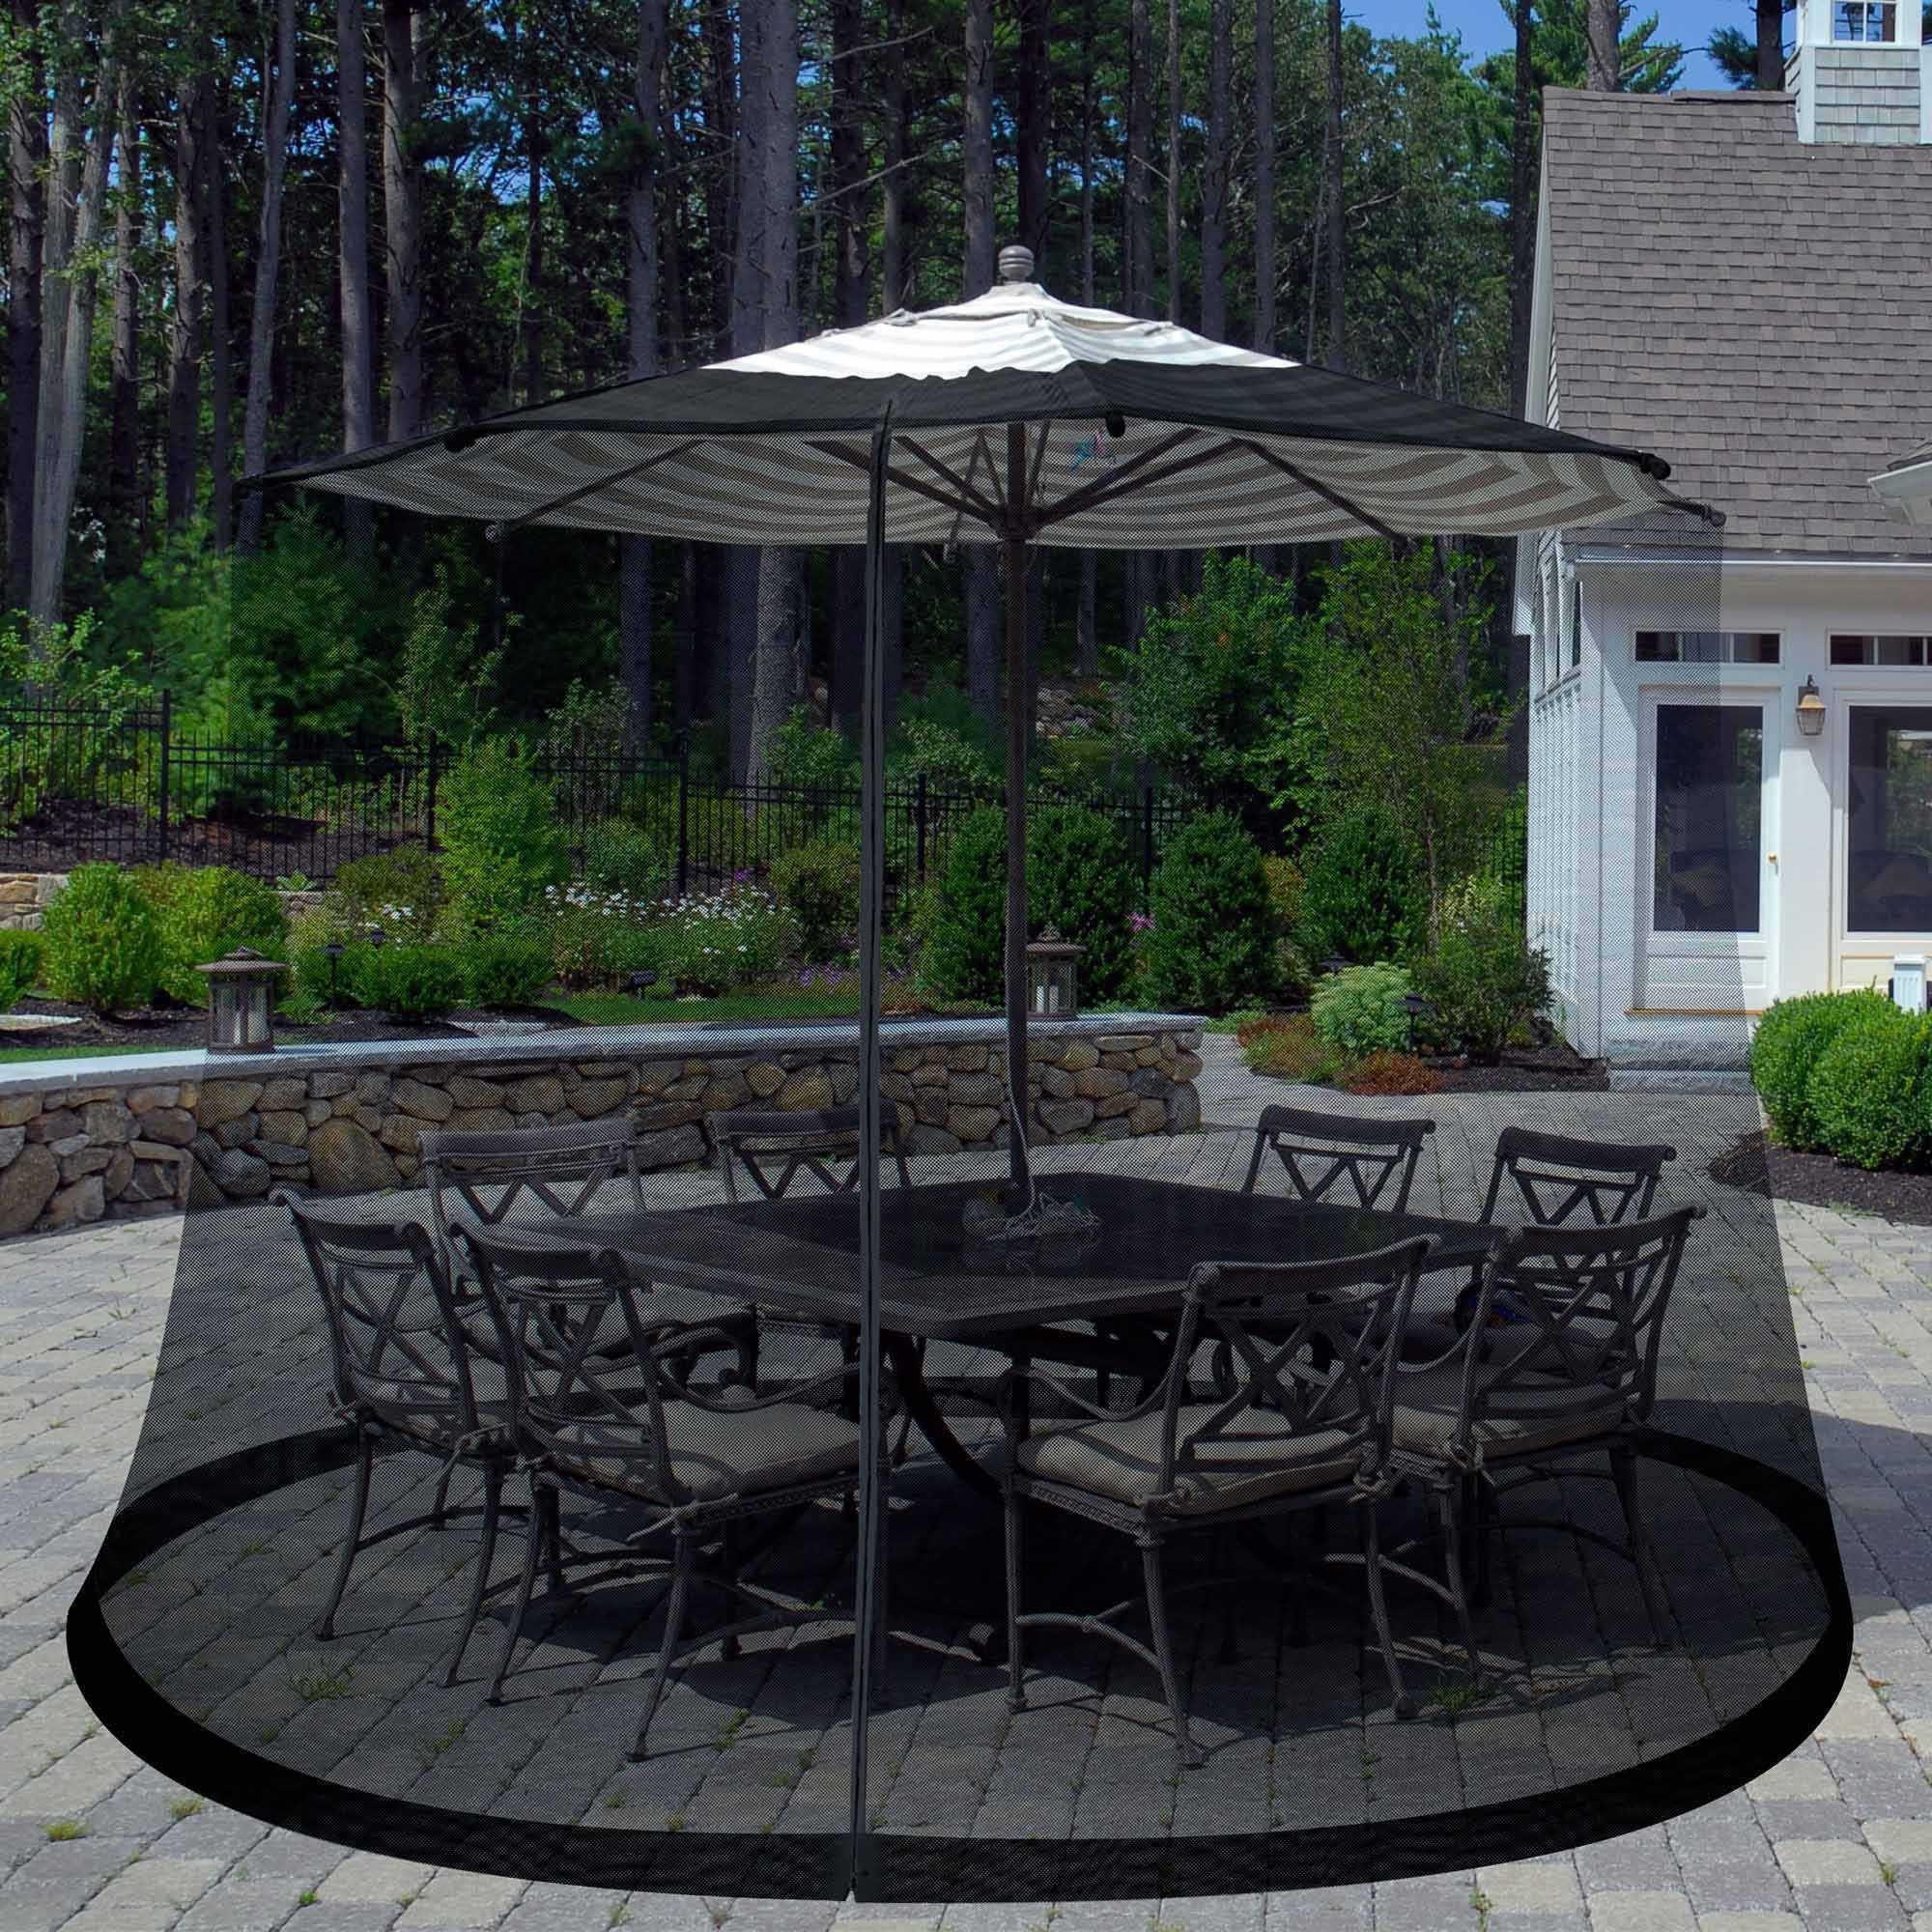 Furniture: Costco Cantilever Umbrella For Most Dramatic Shade With Popular Sunbrella Black Patio Umbrellas (View 6 of 20)